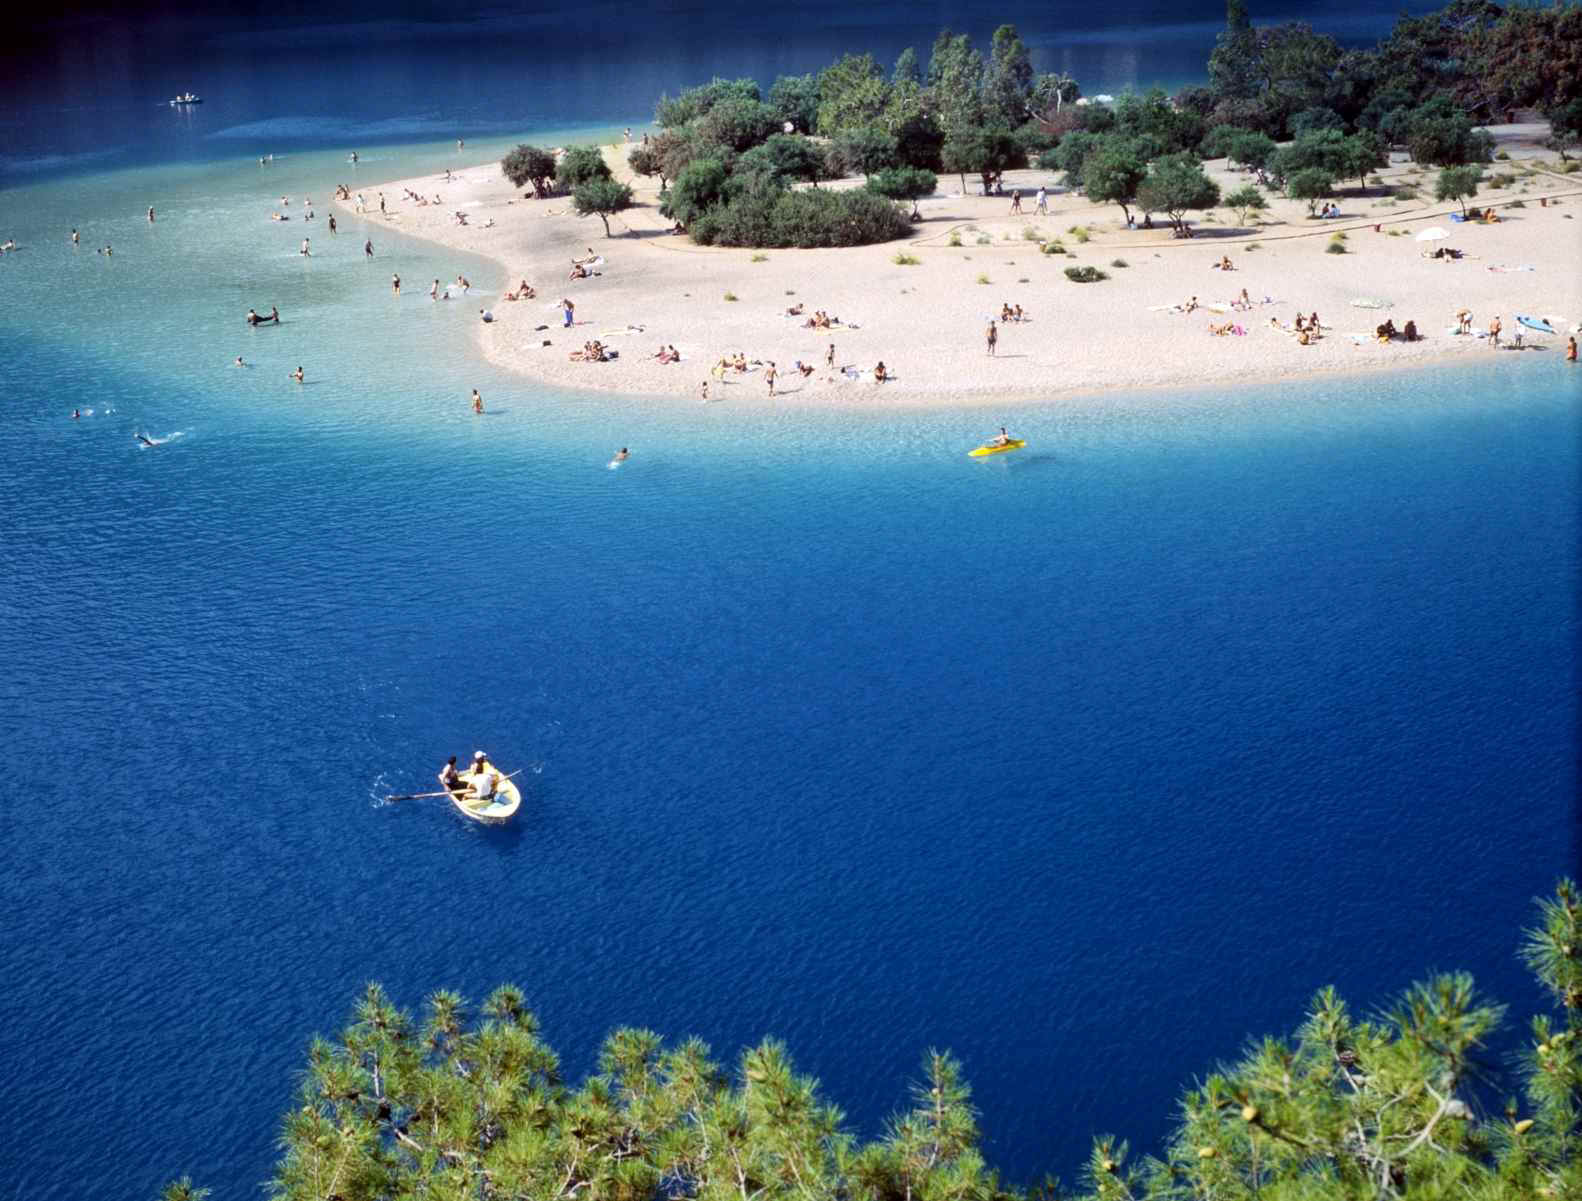 Oludeniz in Turkey